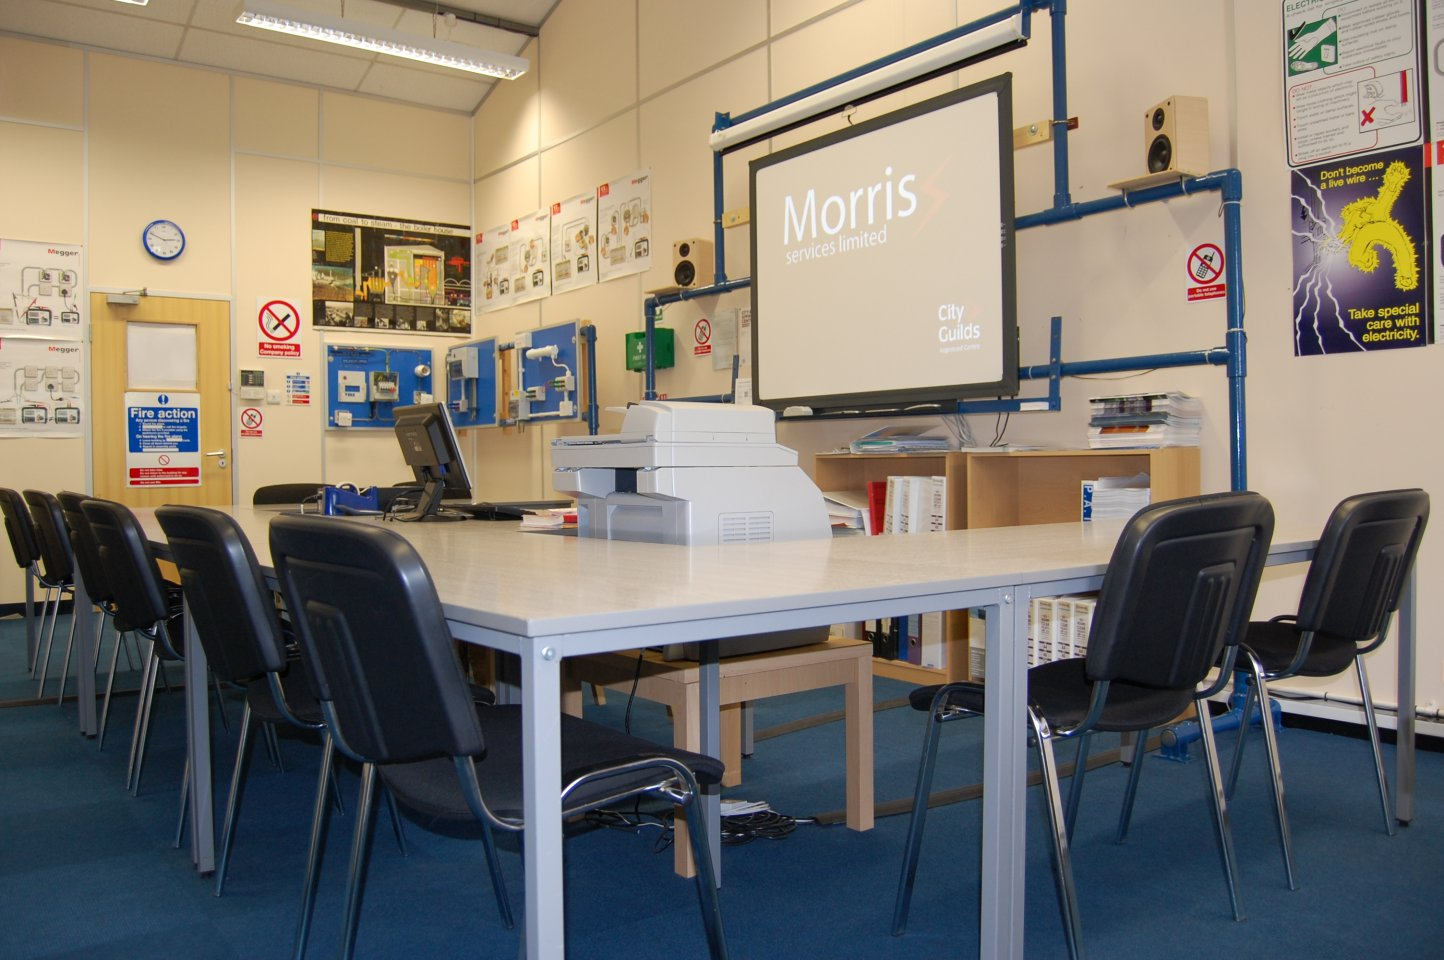 electrical training classroom at morris services ltd